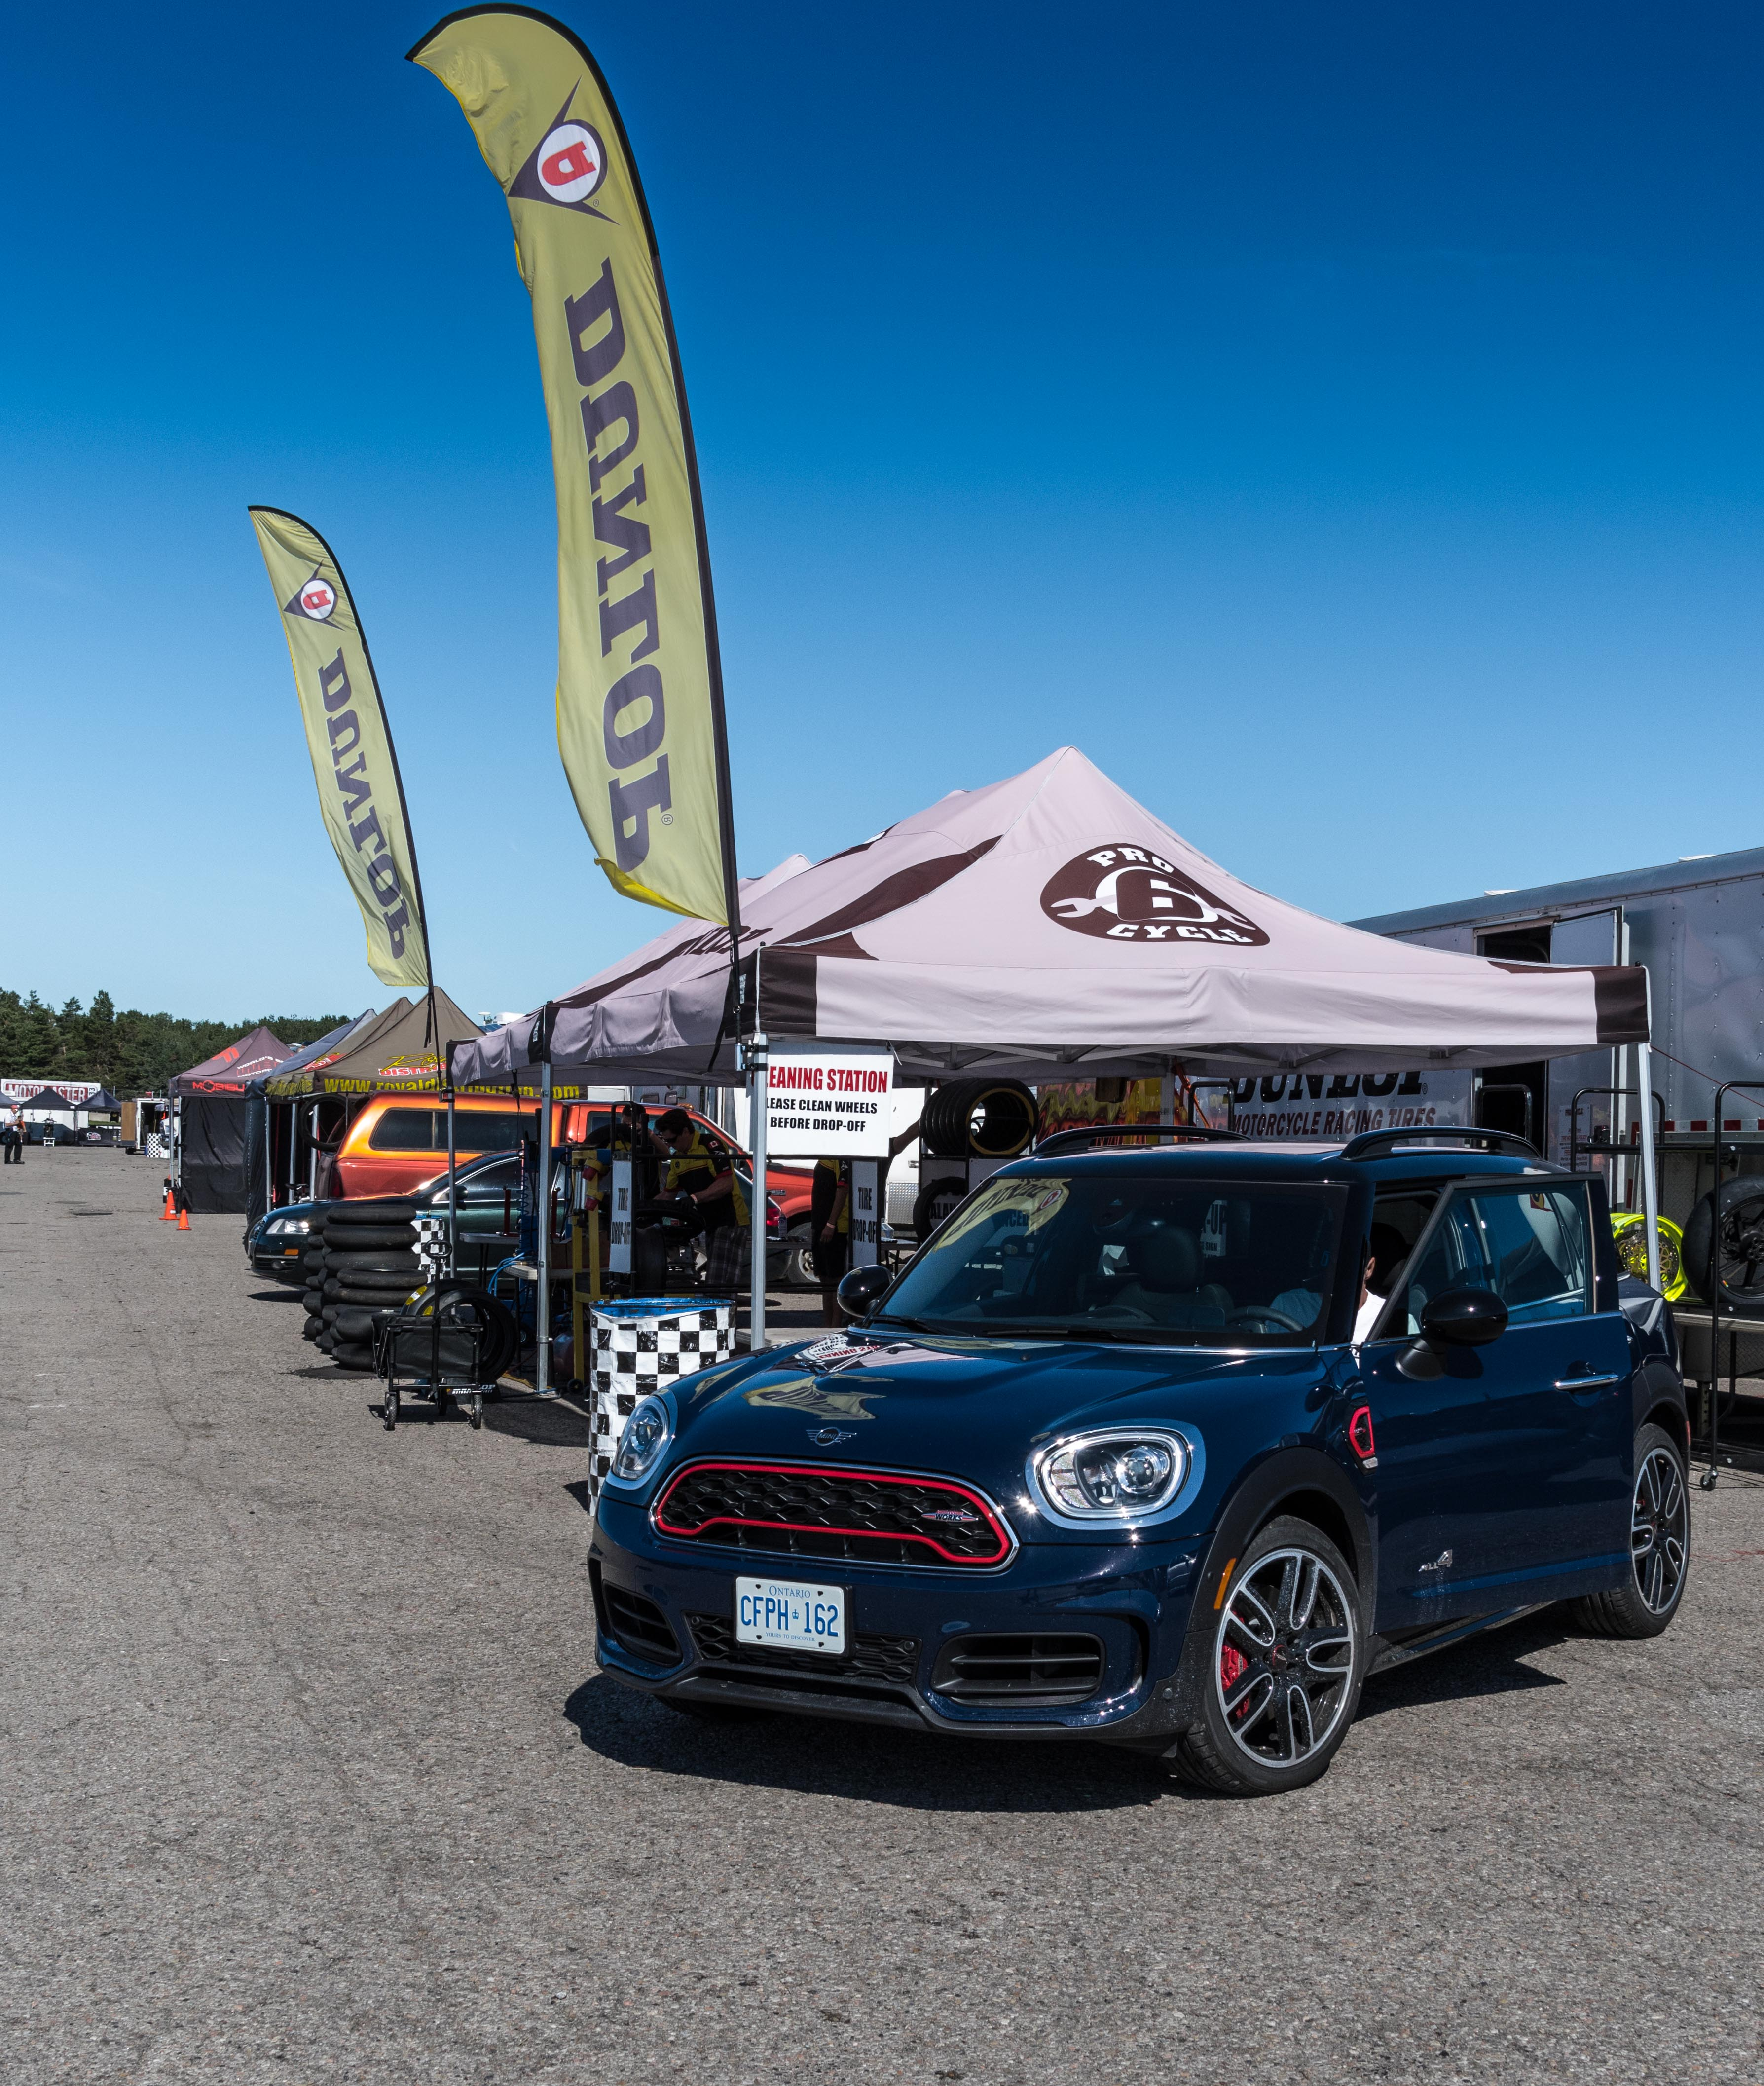 TrackWorthy - 2019 MINI John Cooper Works Countryman - Gary Maavara (2)